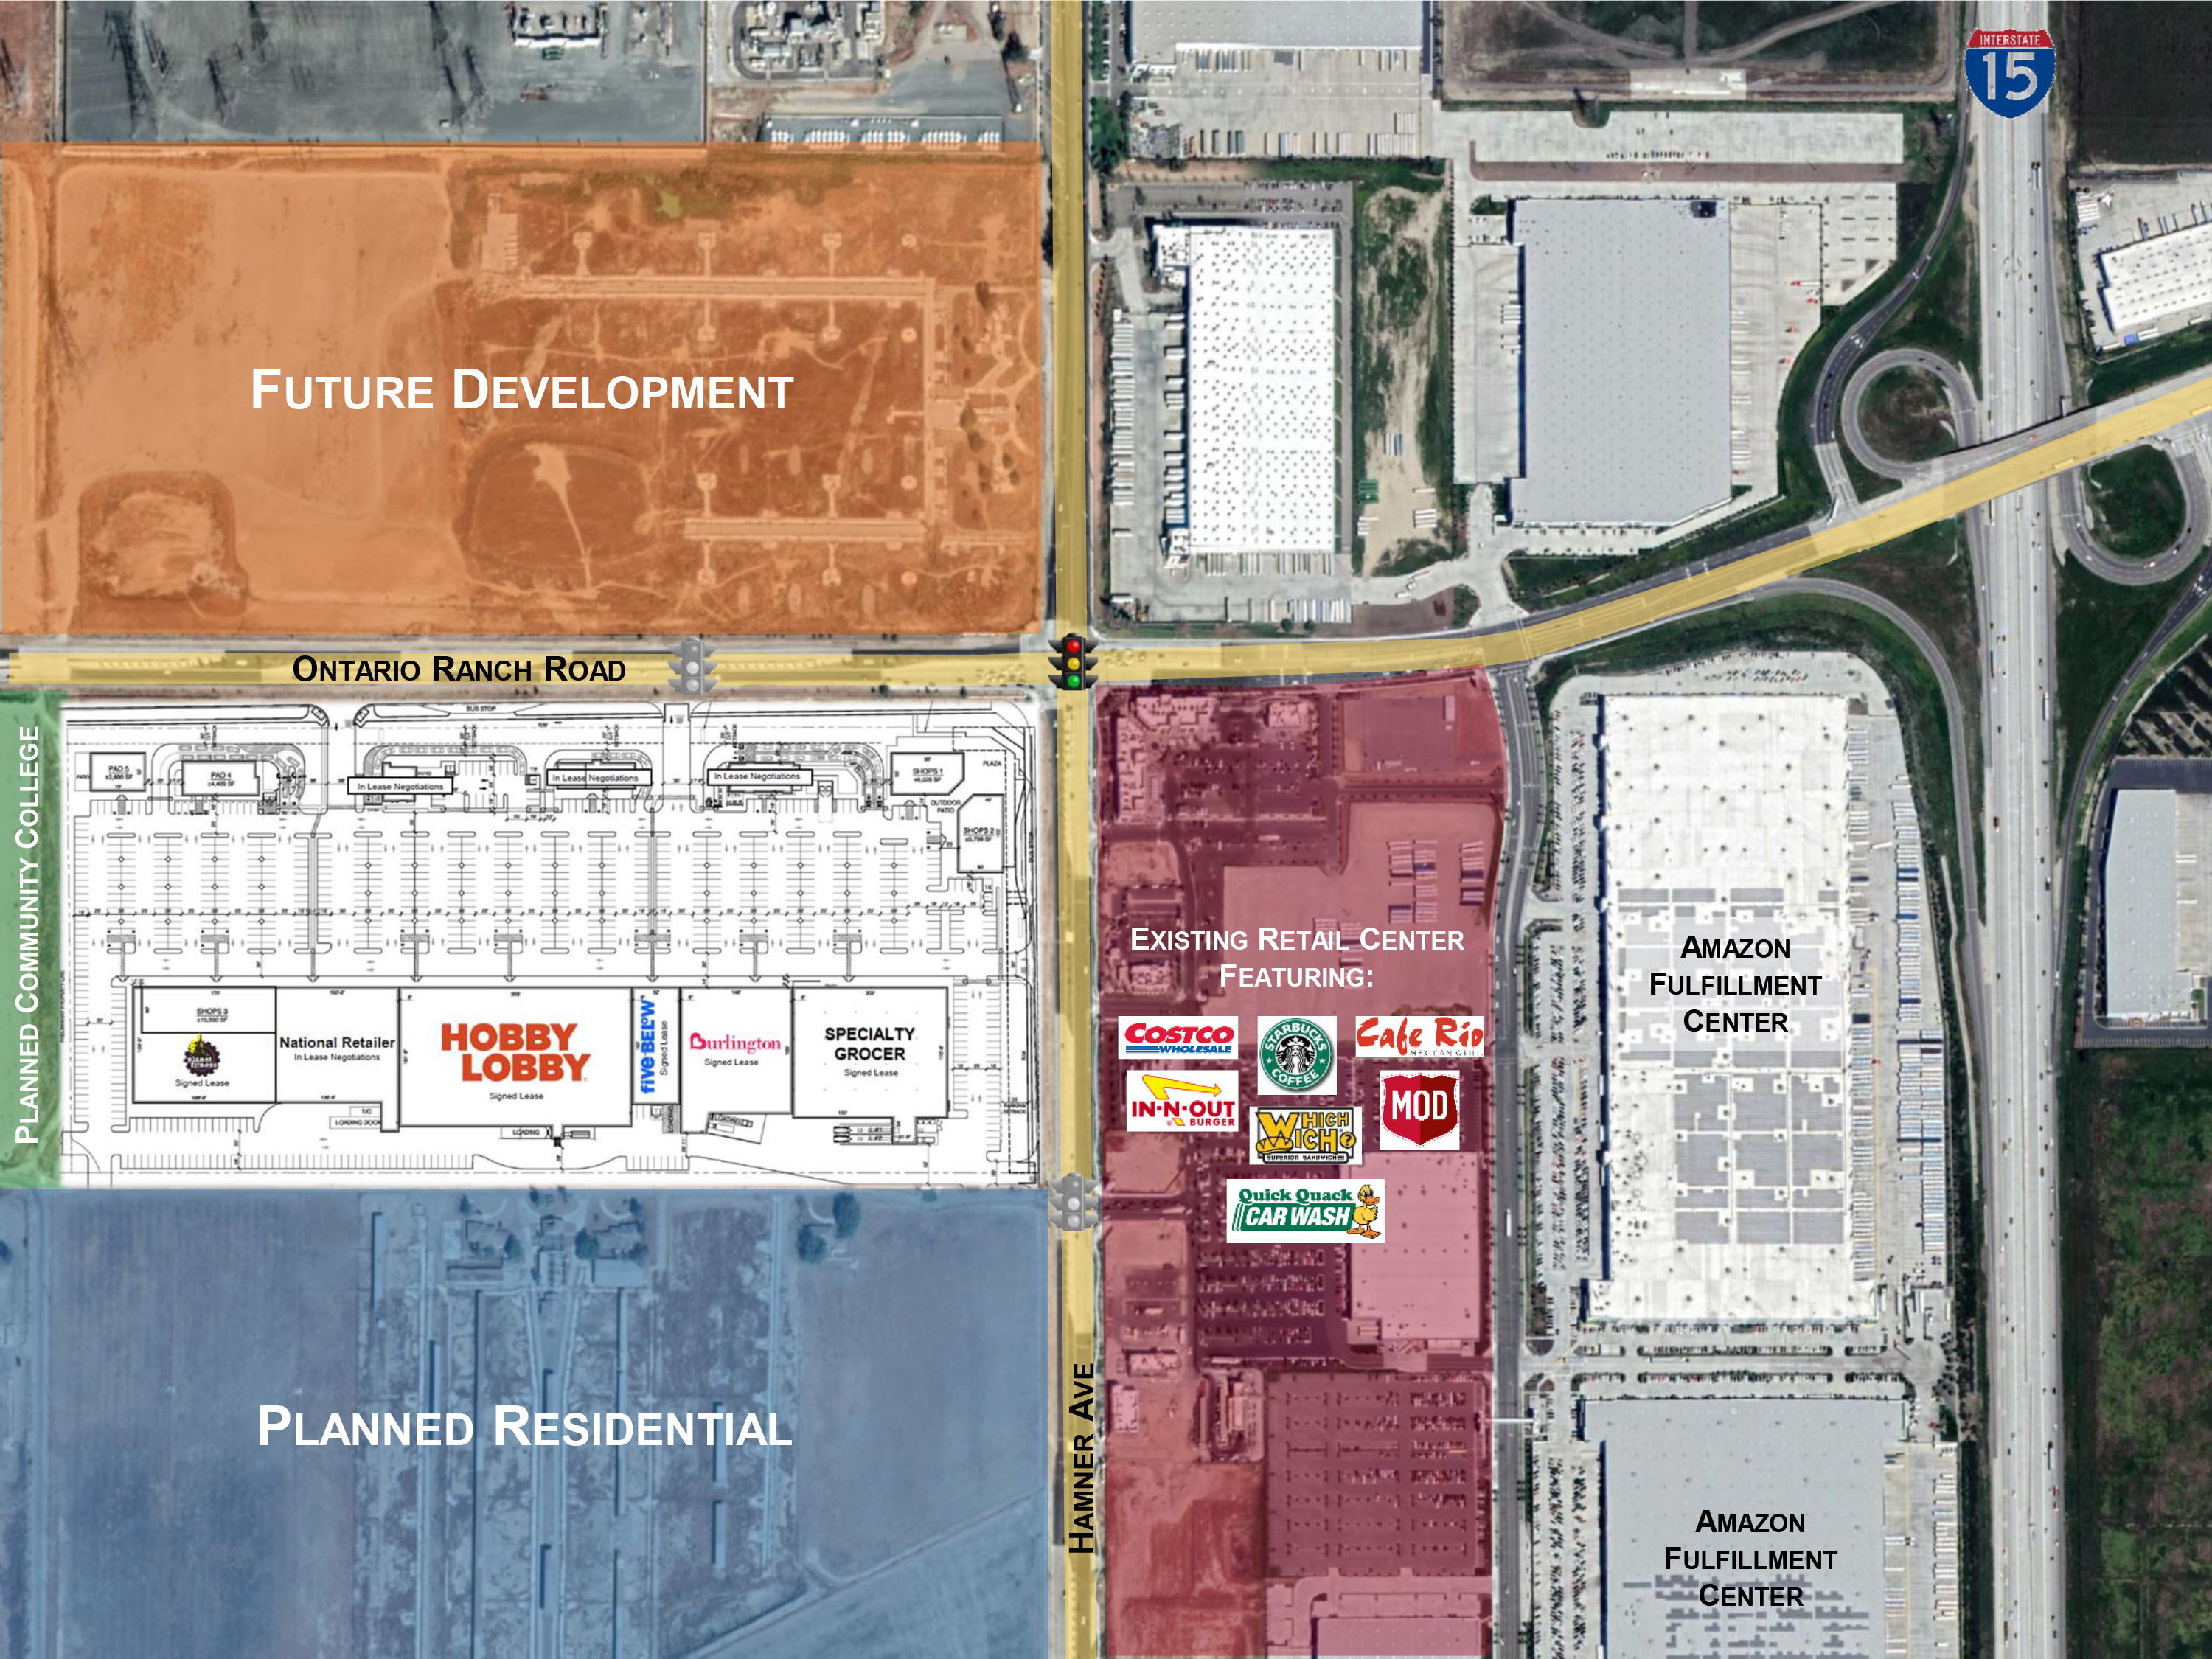 Wood Investments Companies Buys 19.6 Acres to Develop Shopping Center with National Grocer, Burlington, Five Below, Hobby Lobby and Planet Fitness in Ontario, Calif.